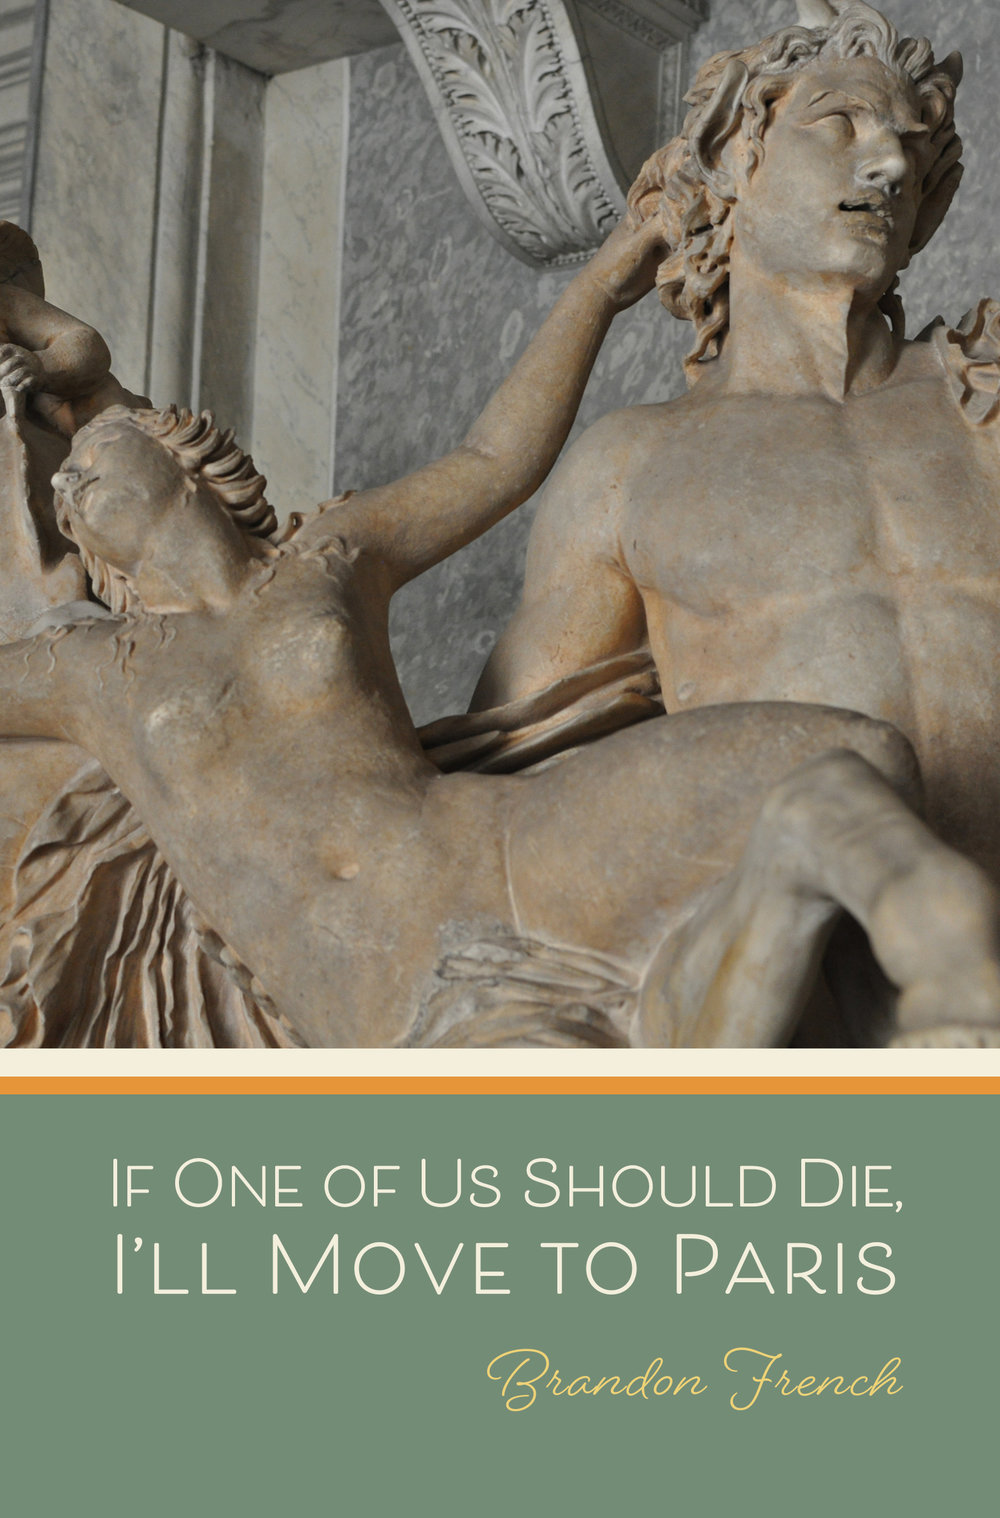 If One of Us Should Die, I'll Move to Paris stories by Brandon French - Fall 2019